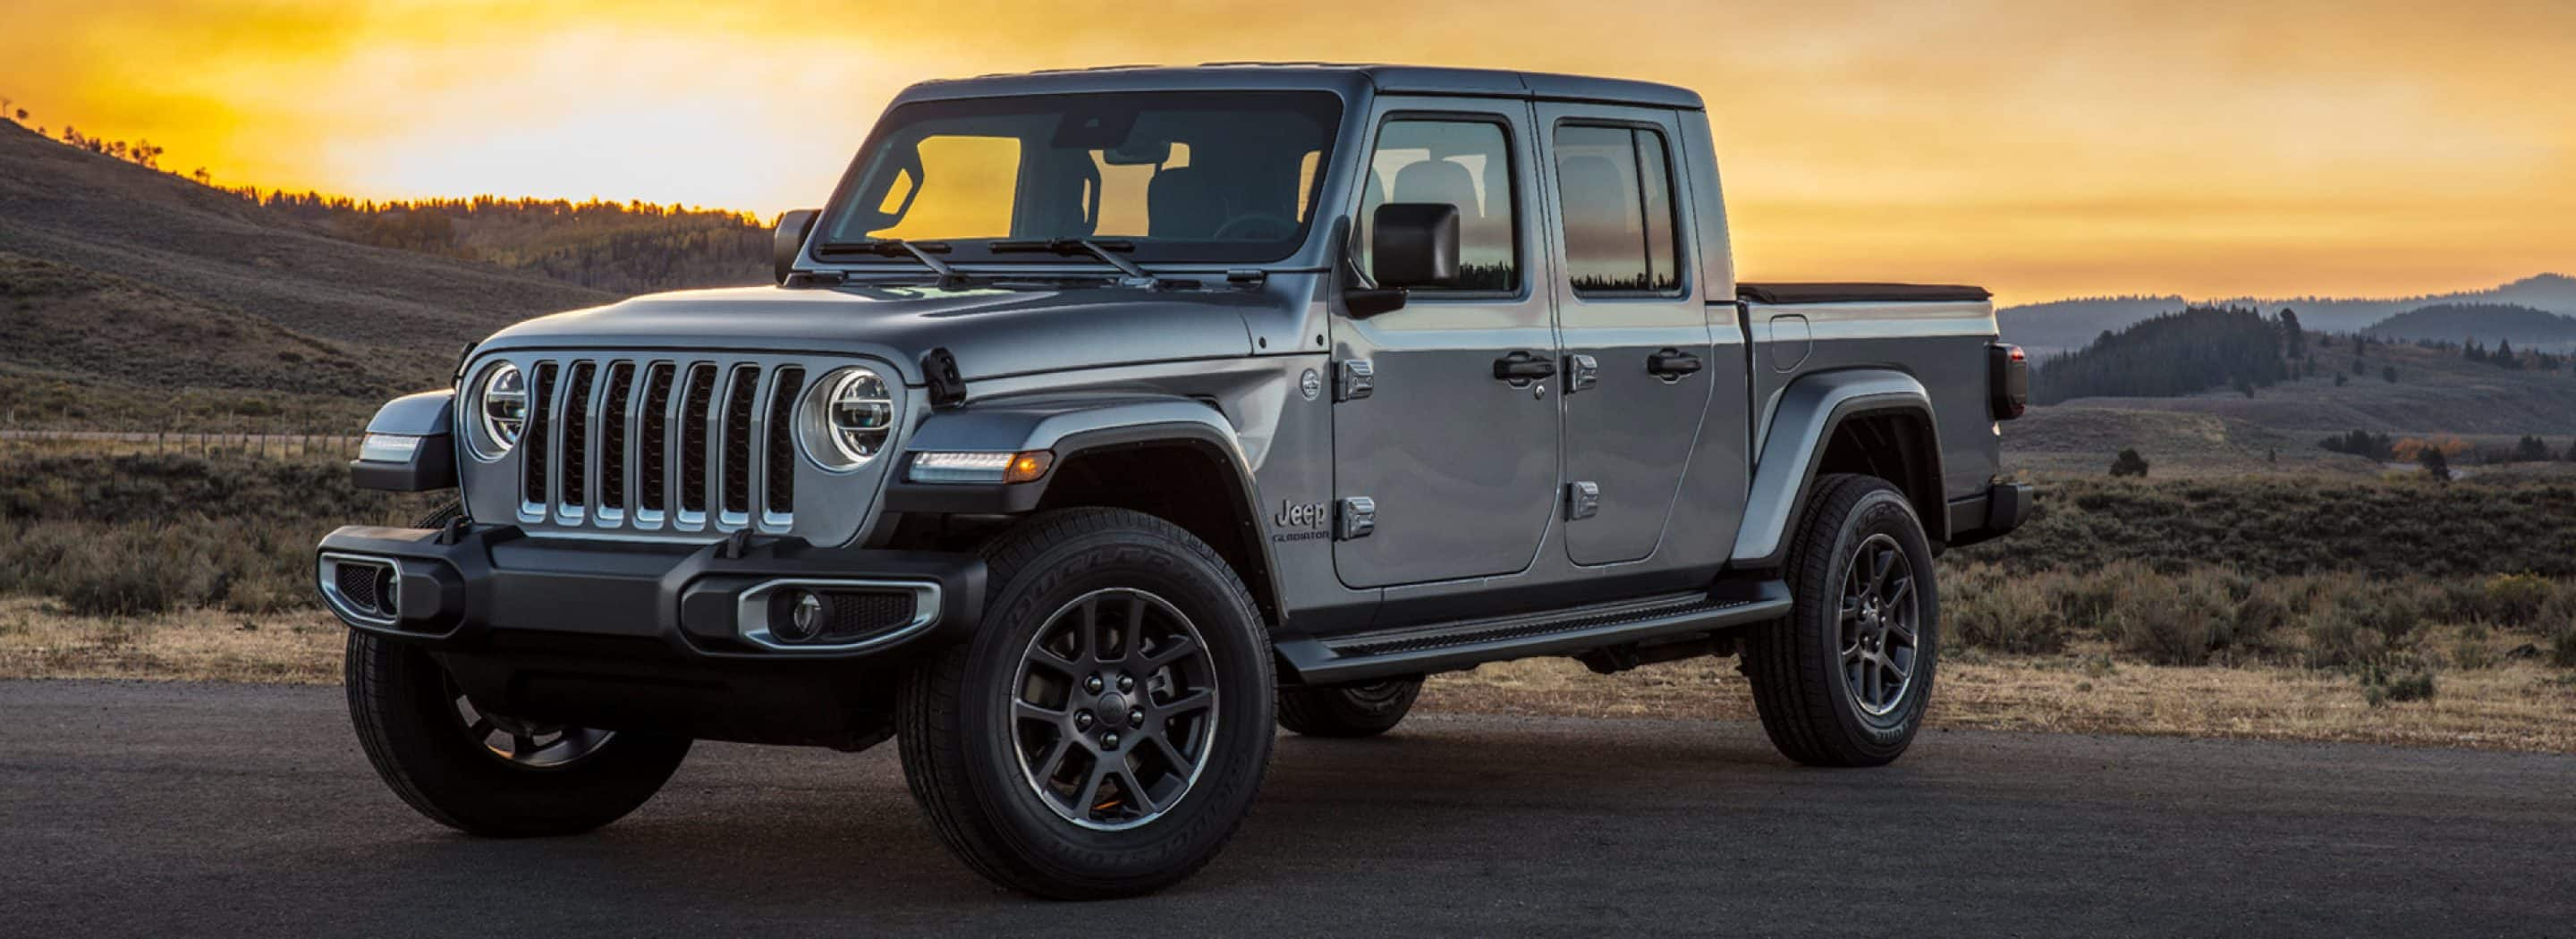 The all-New 2020 Jeep Gladiator announced and revealed